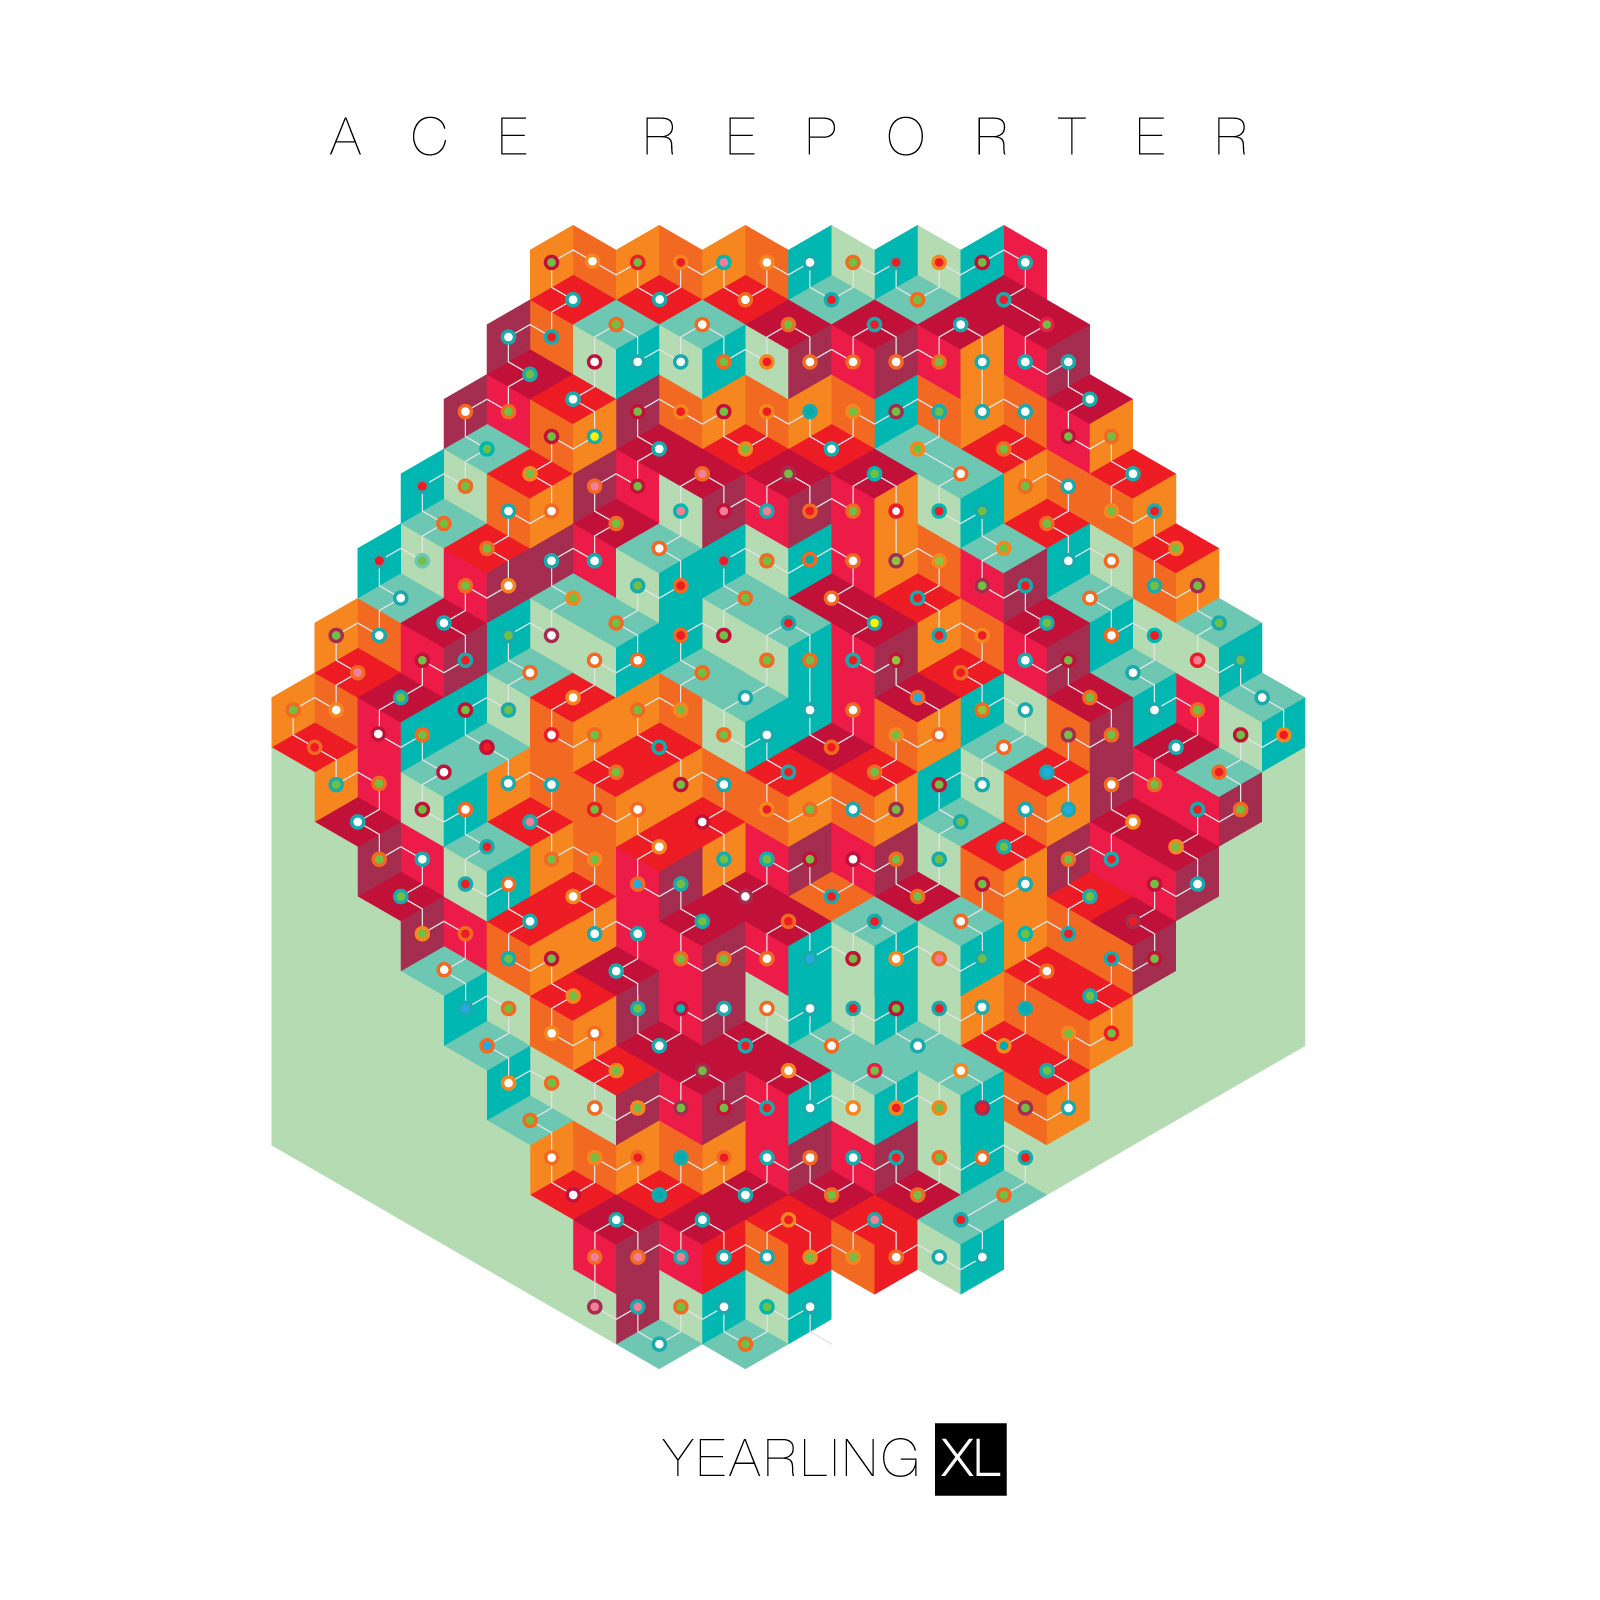 Ace Reporter - YEARLING XL COVER9C.2-1600x1600